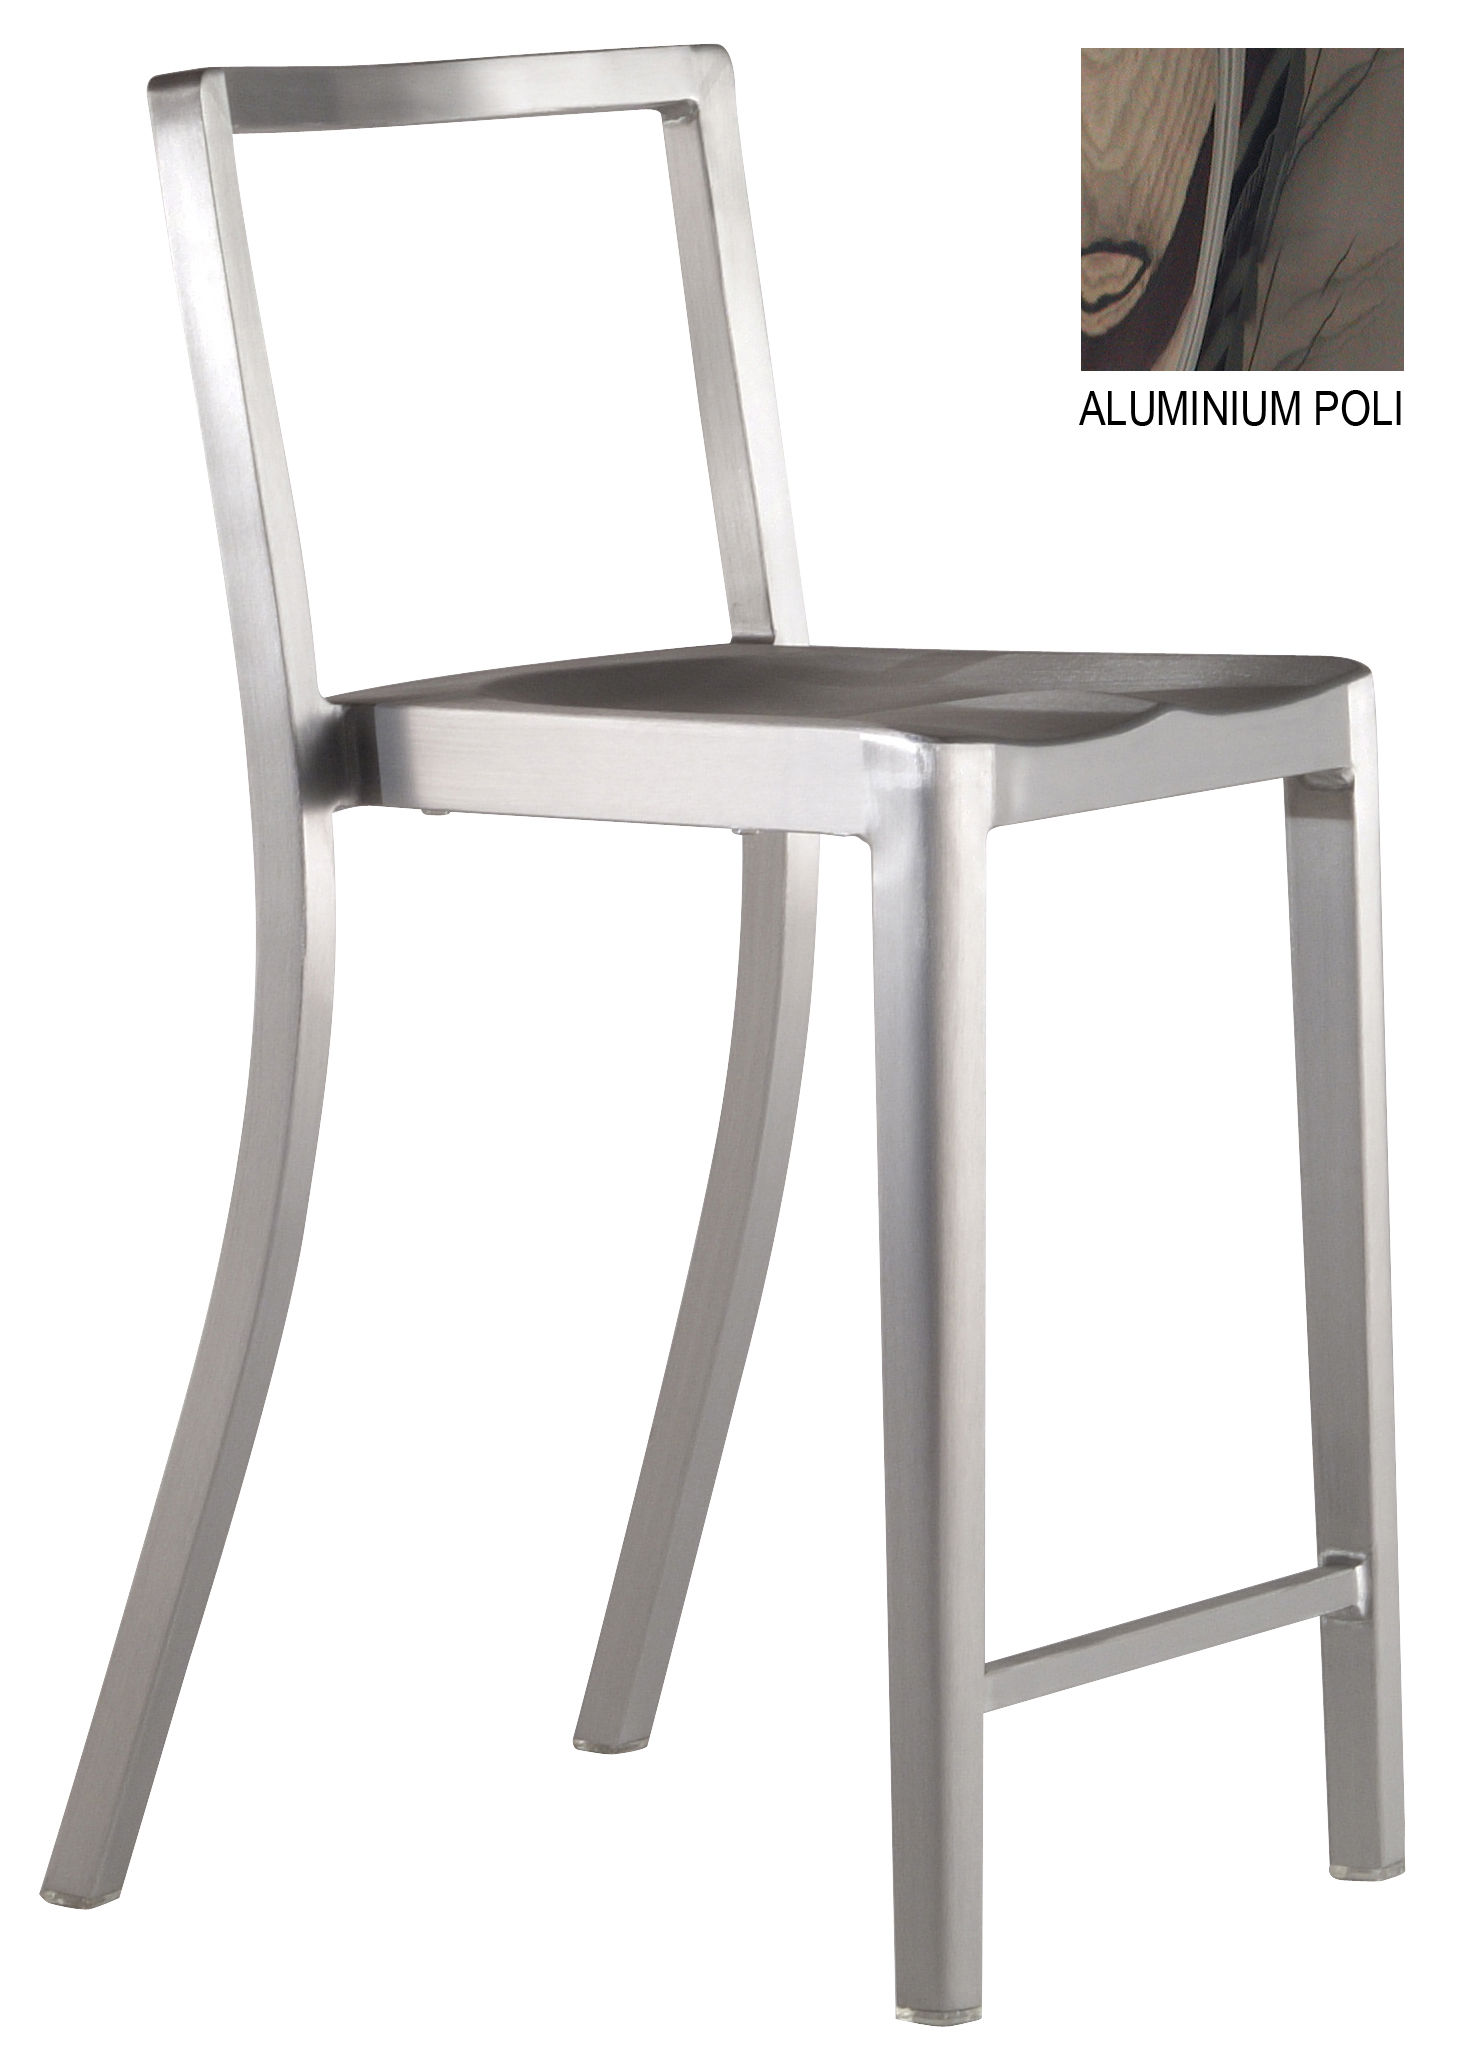 Furniture - Bar Stools - Icon Indoor Bar chair - H 61 cm - Metal by Emeco - Polished aluminium - Recycled polished aluminium